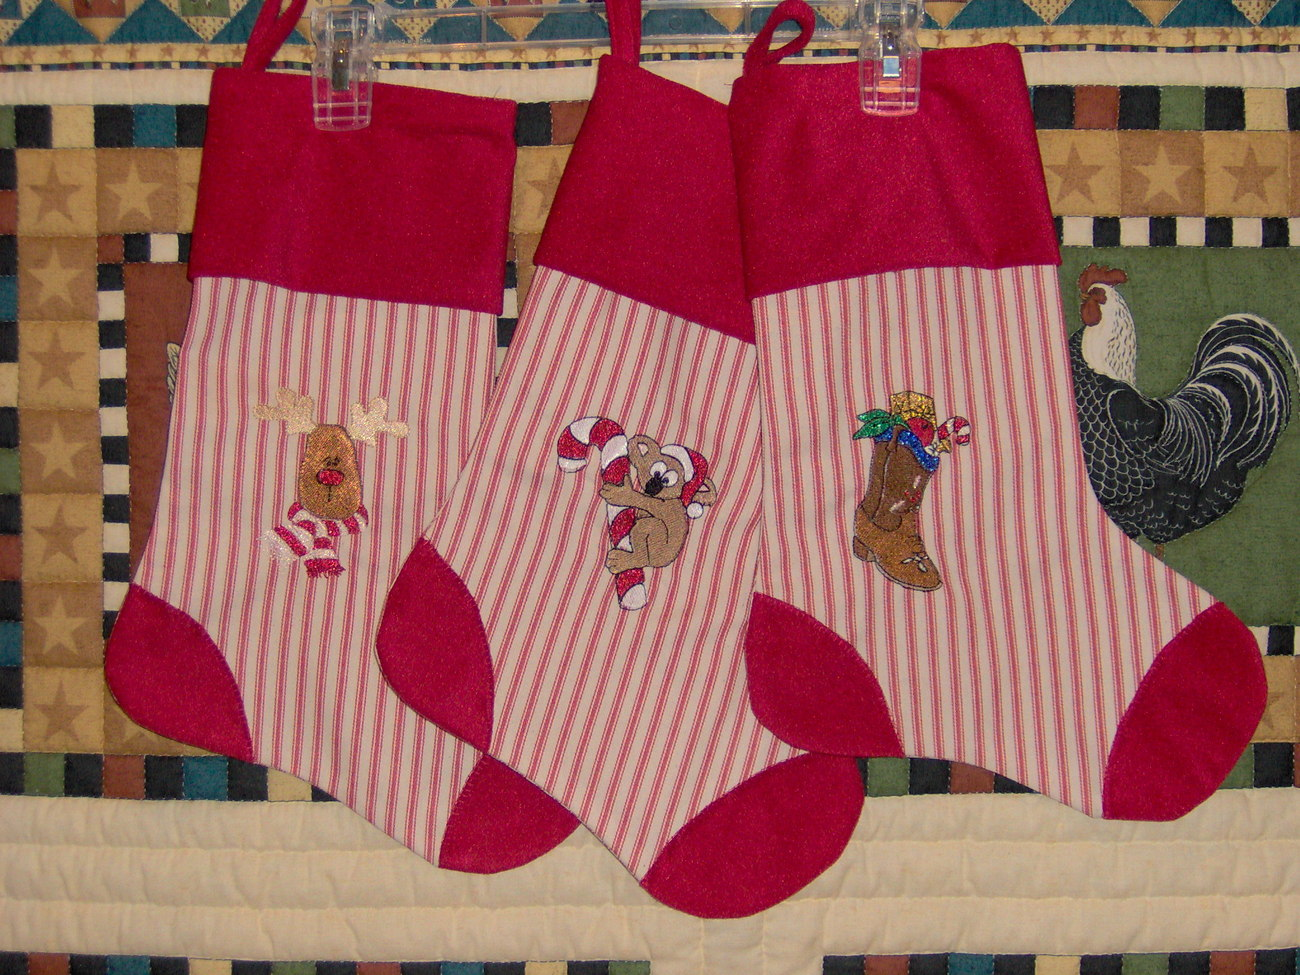 Primary image for Christmas stockings